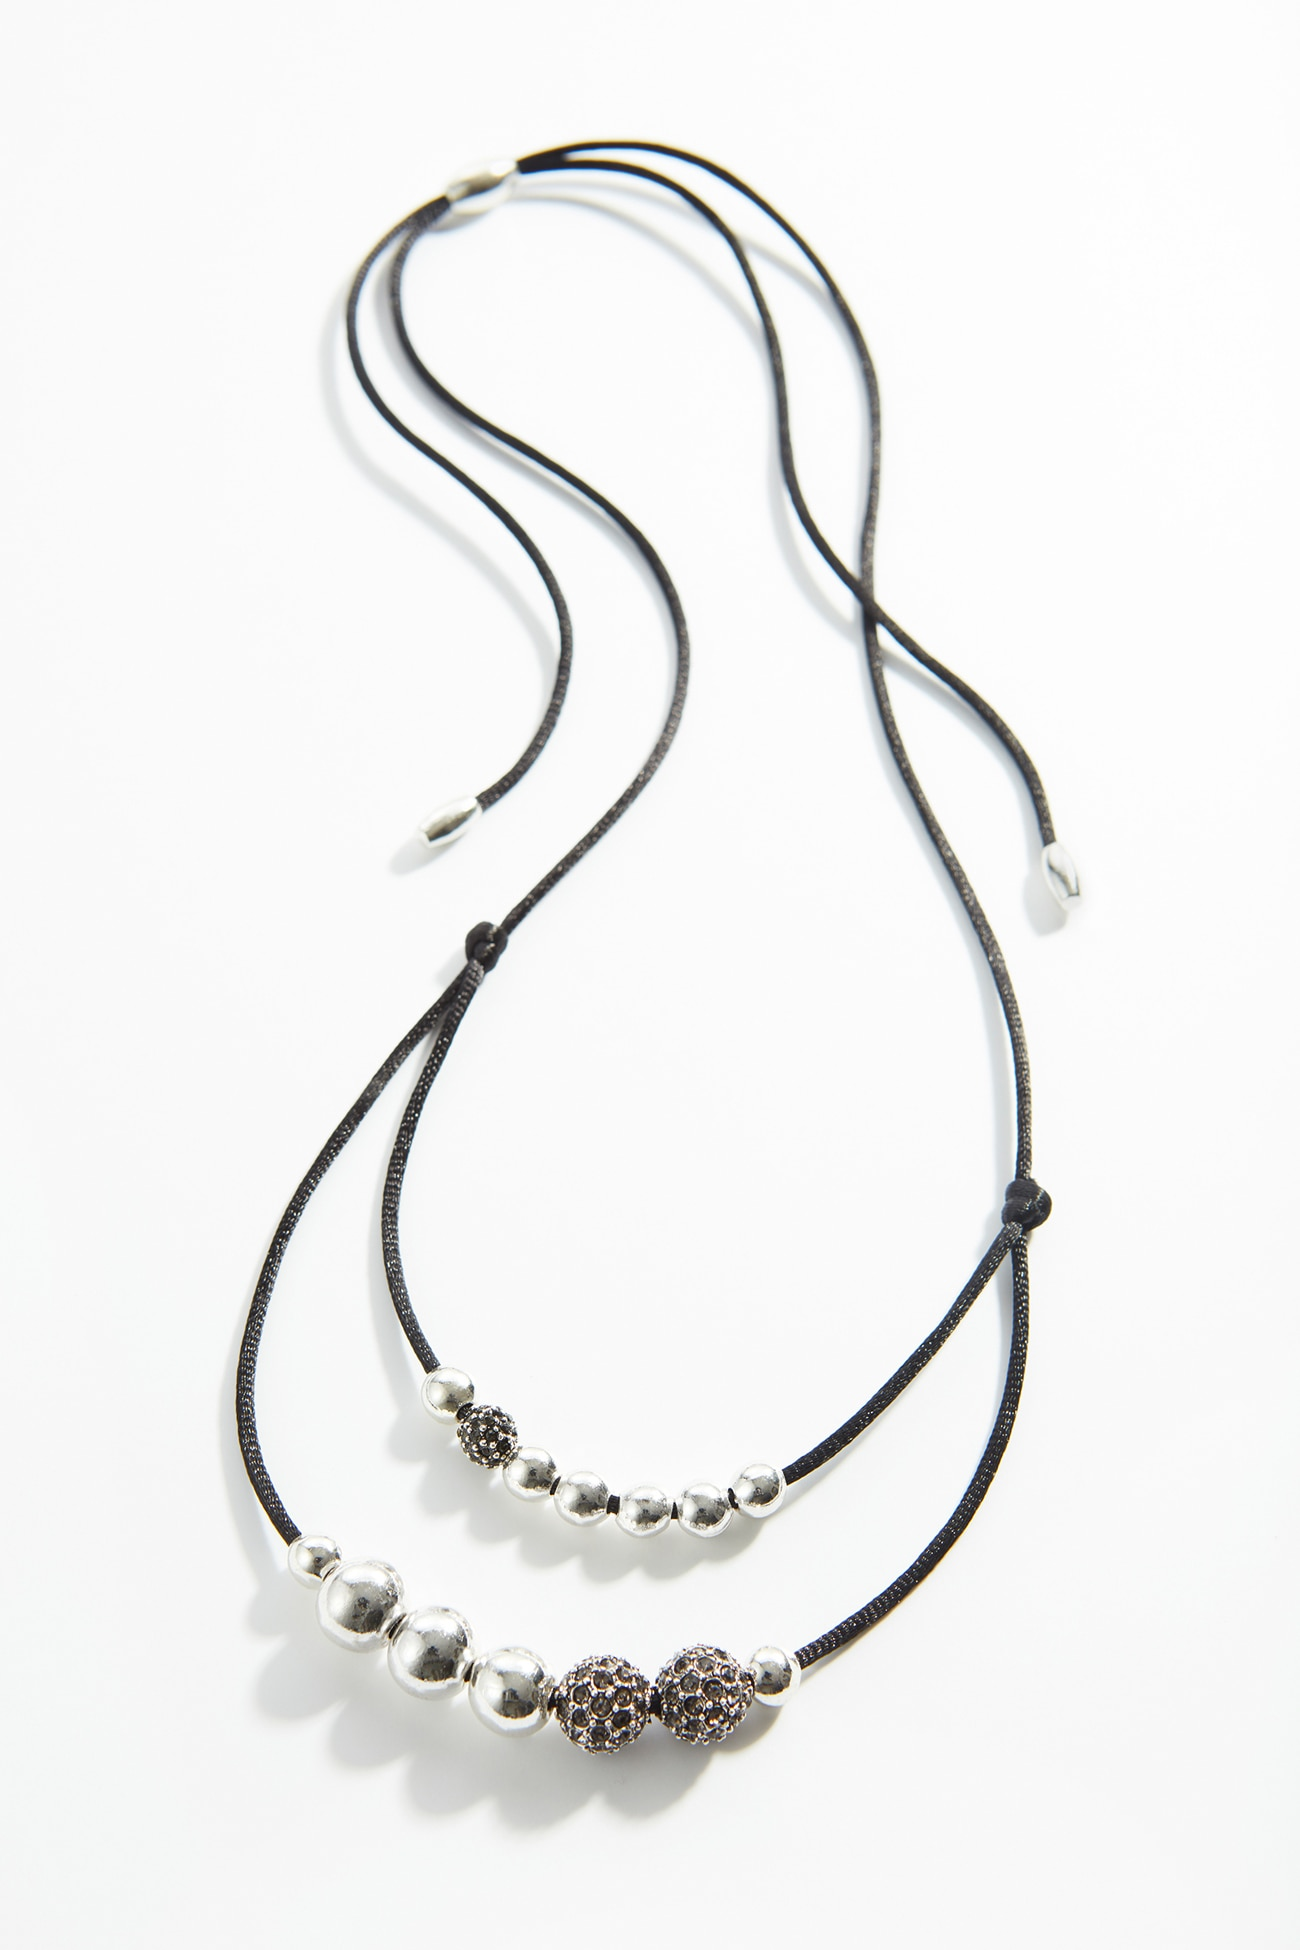 sculpted-metal beads & pavé double-strand necklace